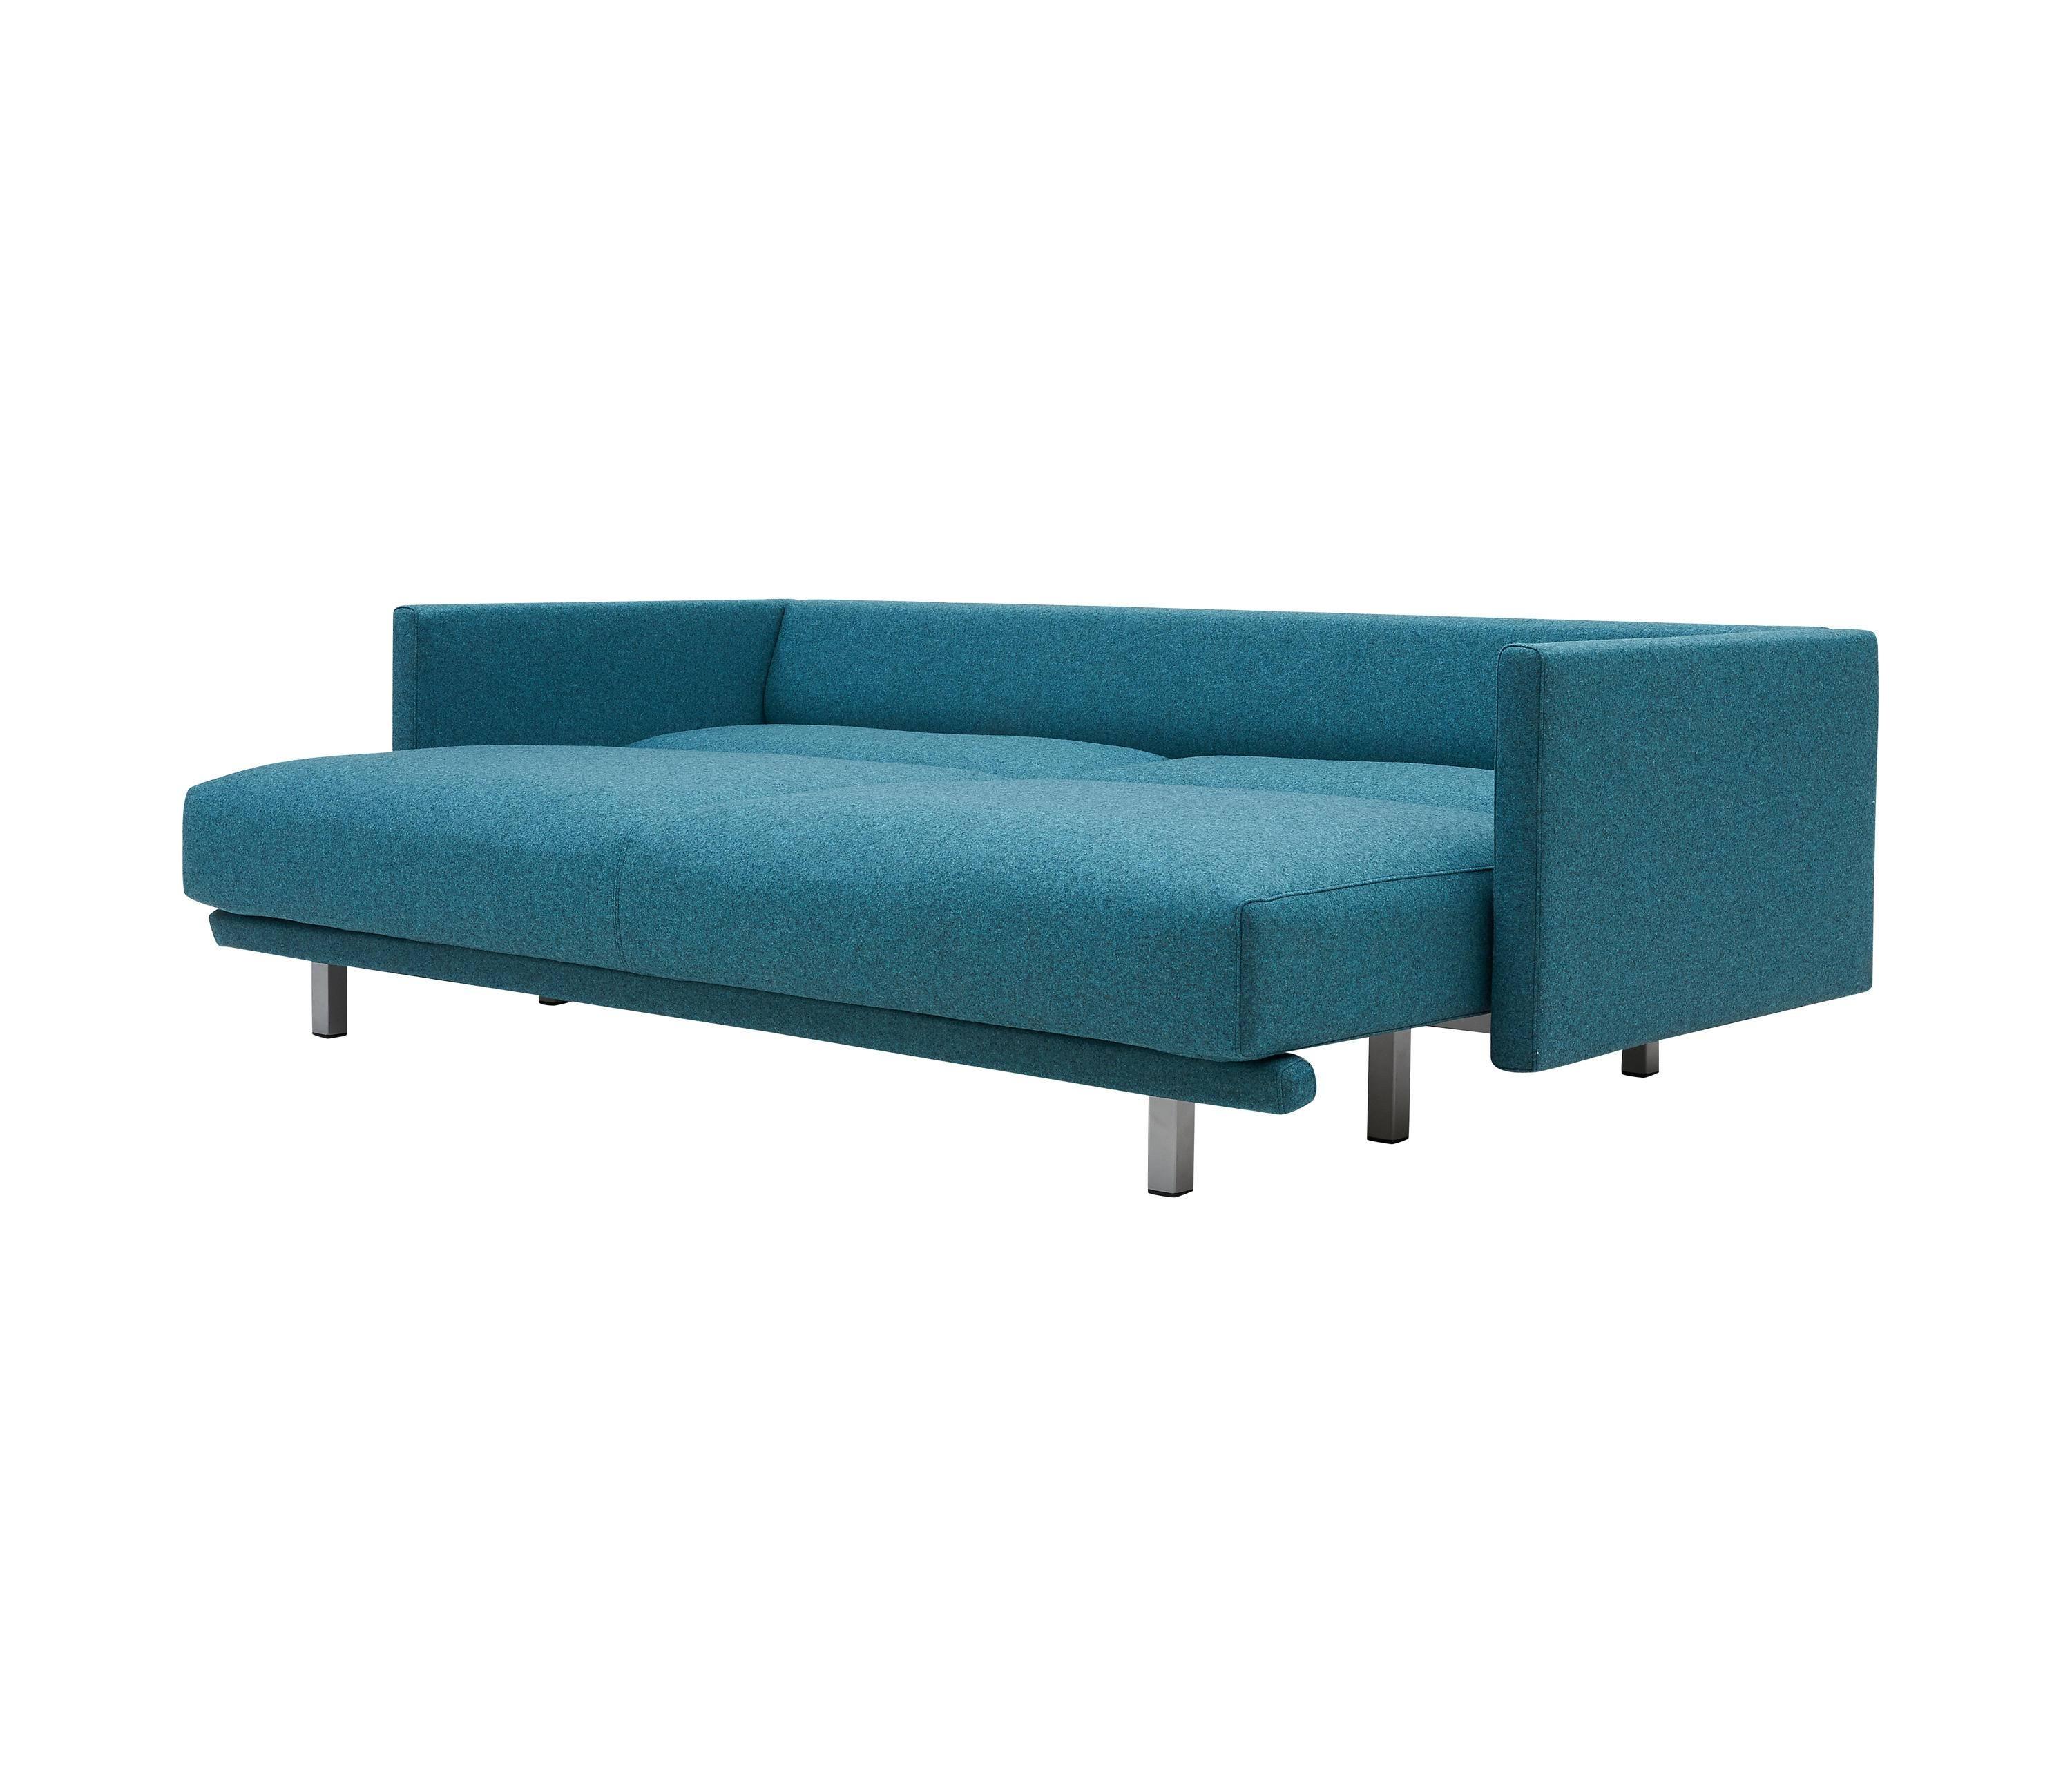 aqua sofa kennedy mitchell gold the best beds